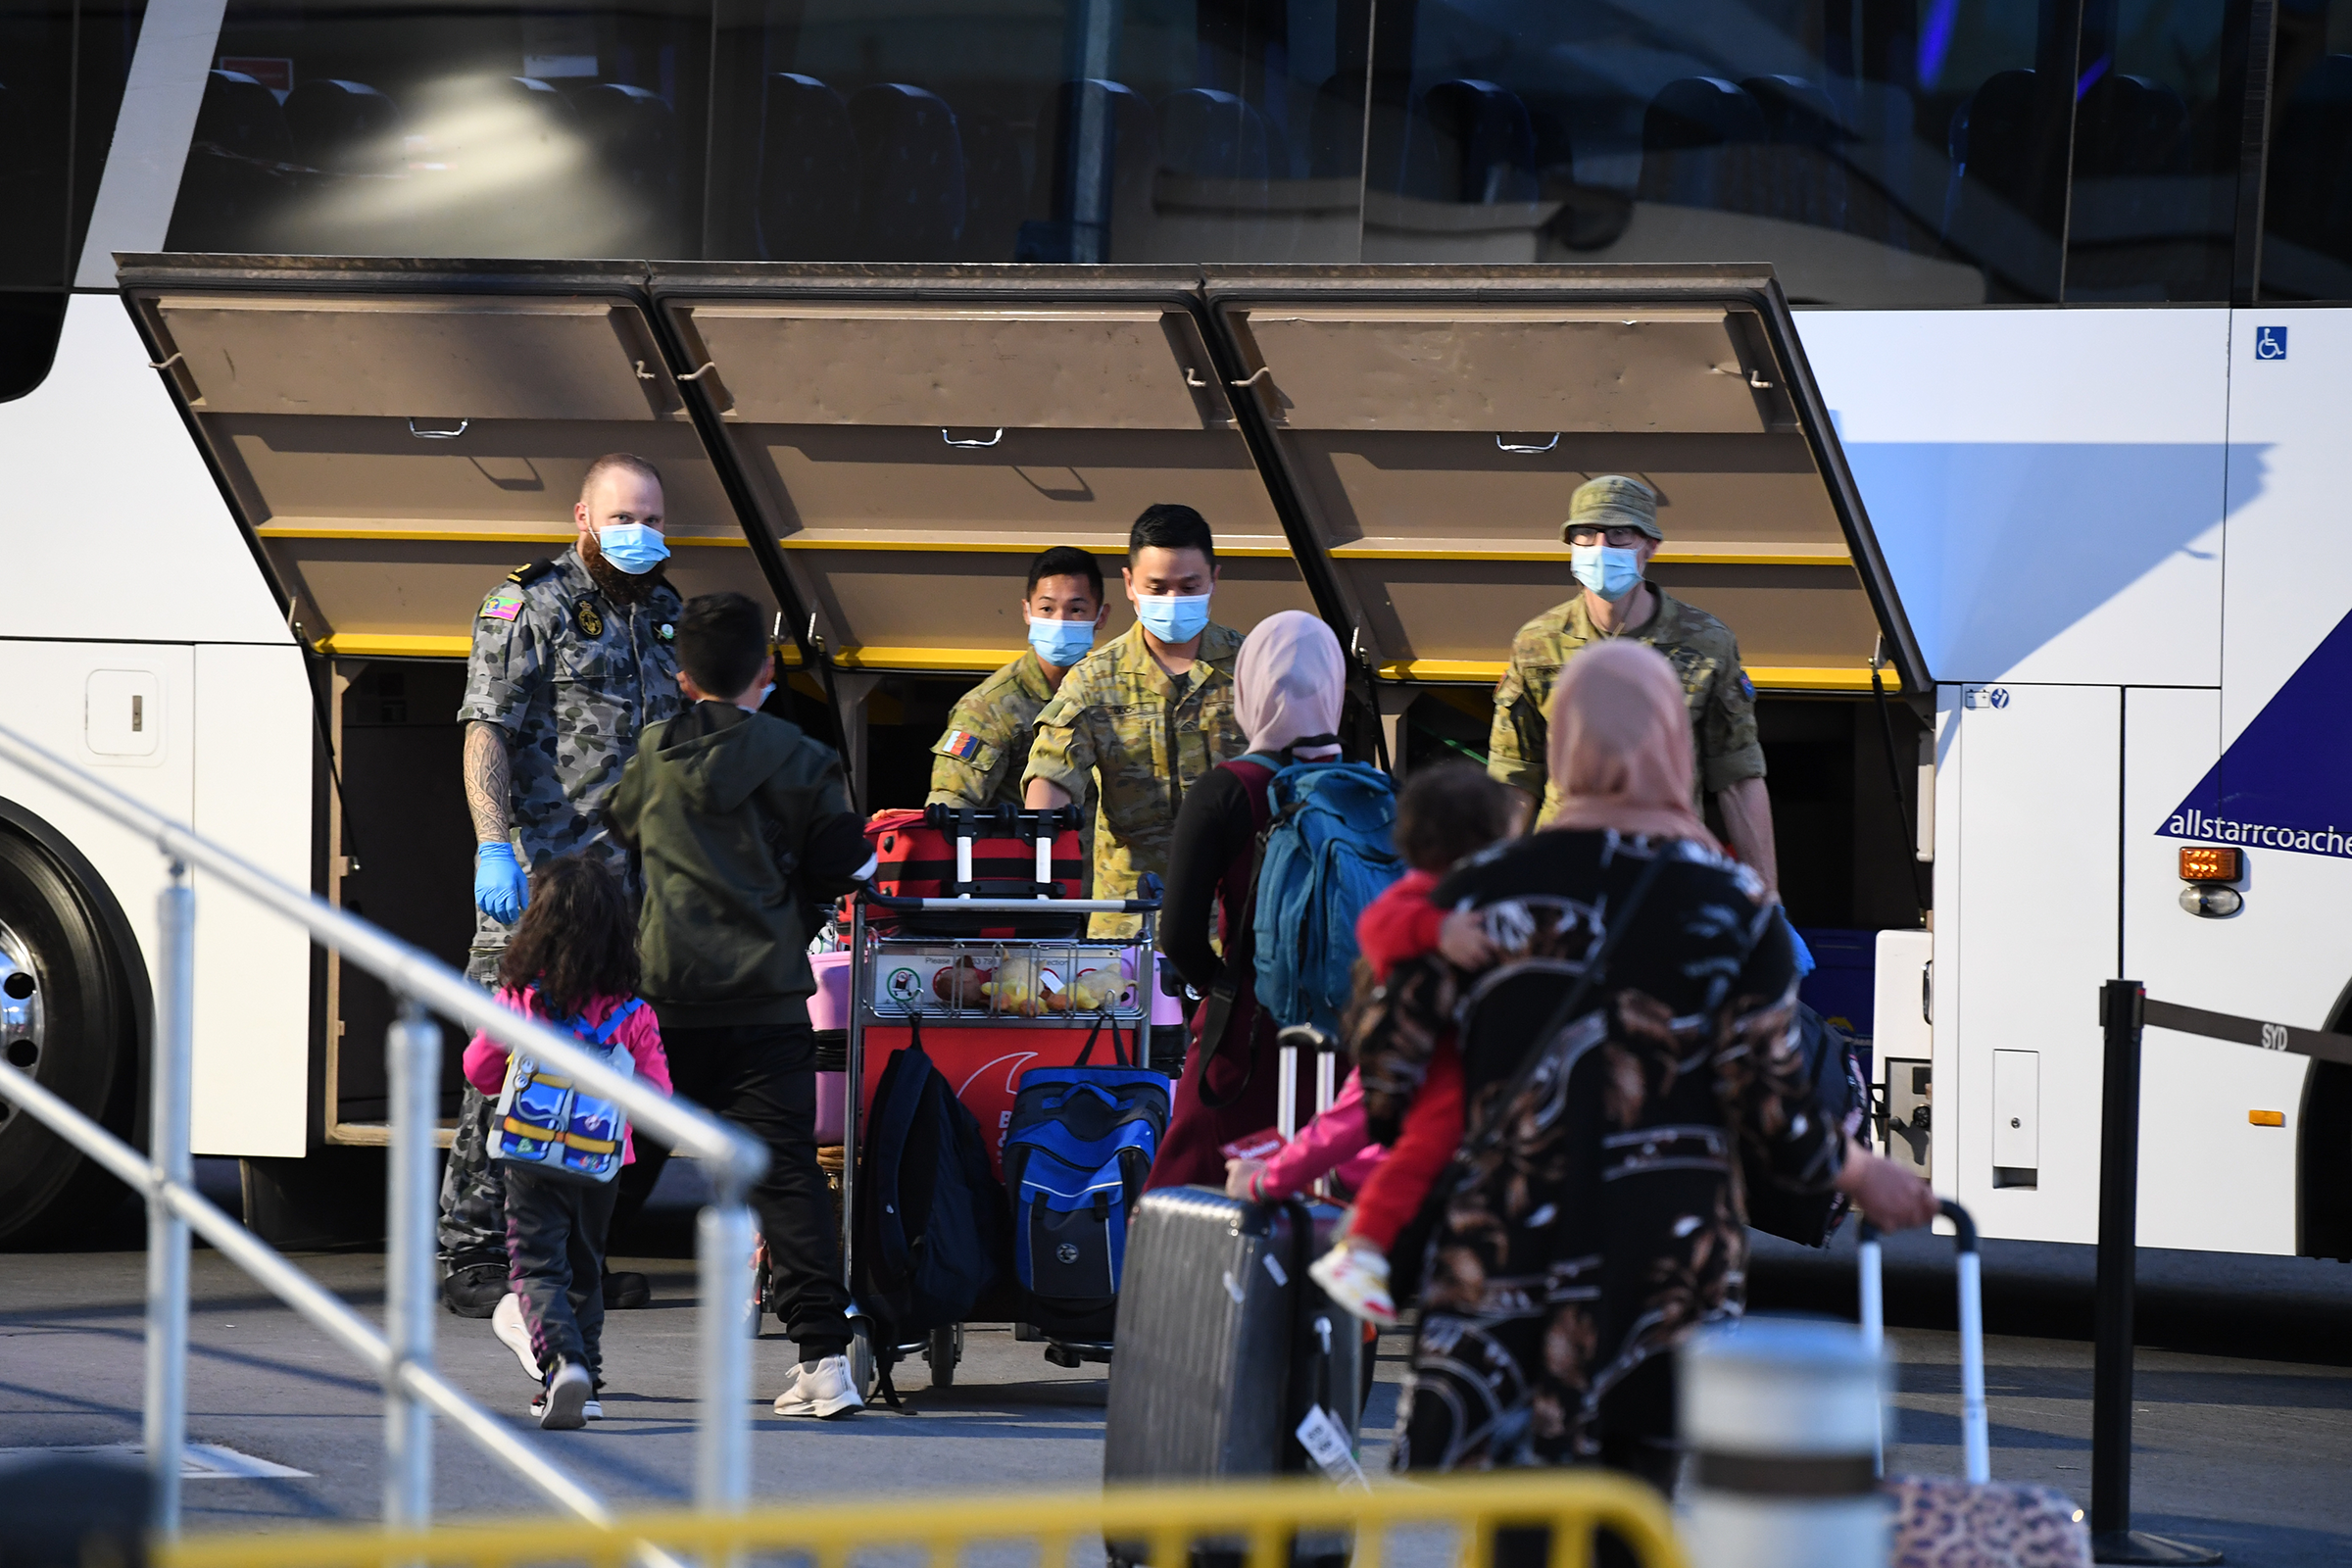 Passengers wearing face masks arrive to Sydney after a Qatar Airways flight on May 1, 2021. Australia banned flights from India earlier this week due to the escalating COVID-19 outbreak in India, but stranded Australians were still able to return on flights by transiting through Doha.